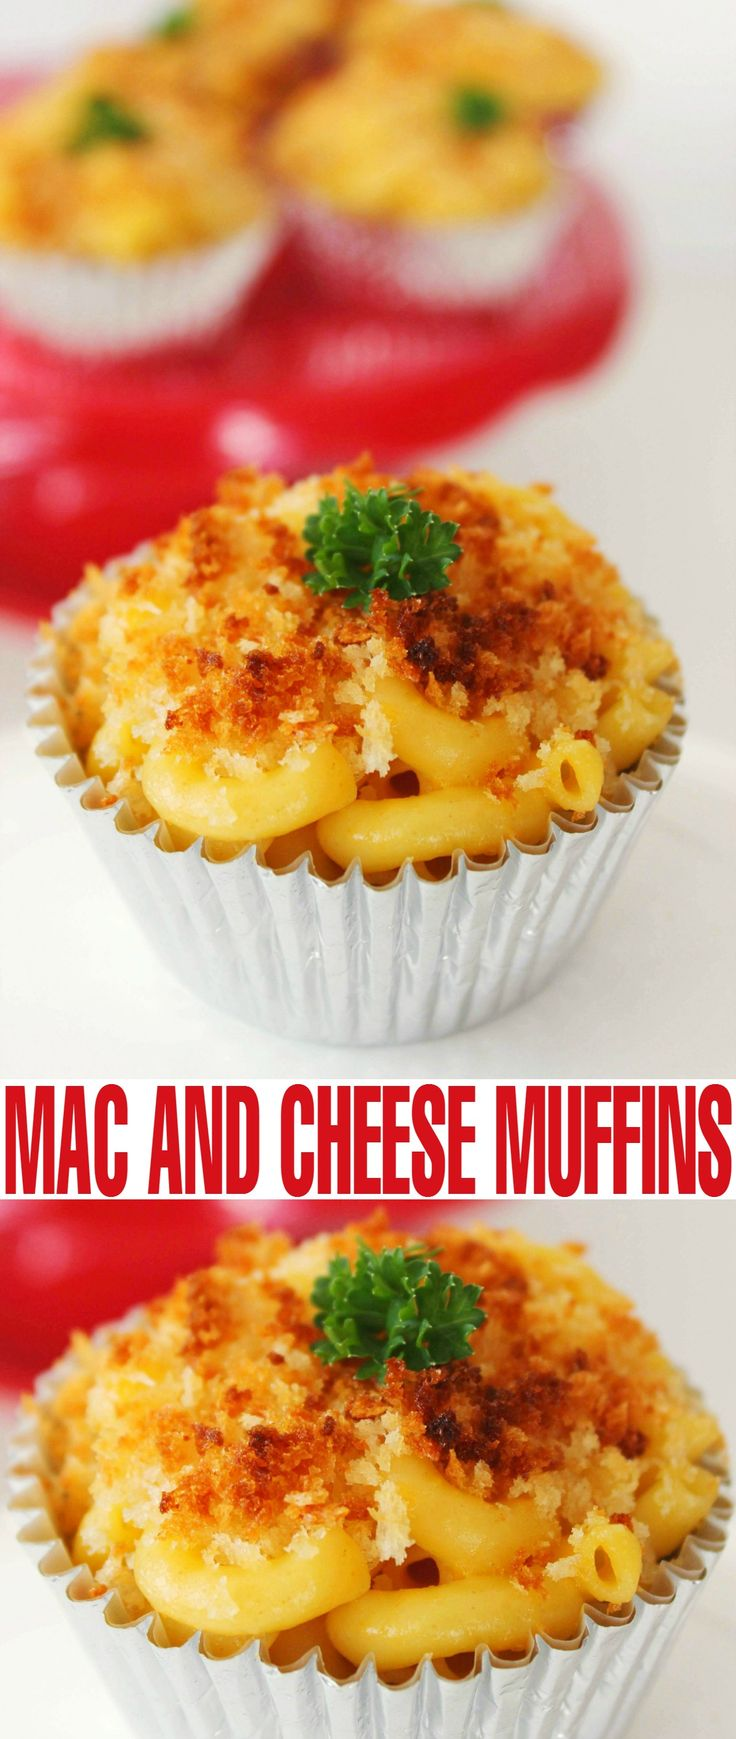 Basically every kid loves Mac & cheese, and these Mac & Cheese muffins are a fun twist on the classic macaroni and cheese recipe to make an even more kid friendly meal.